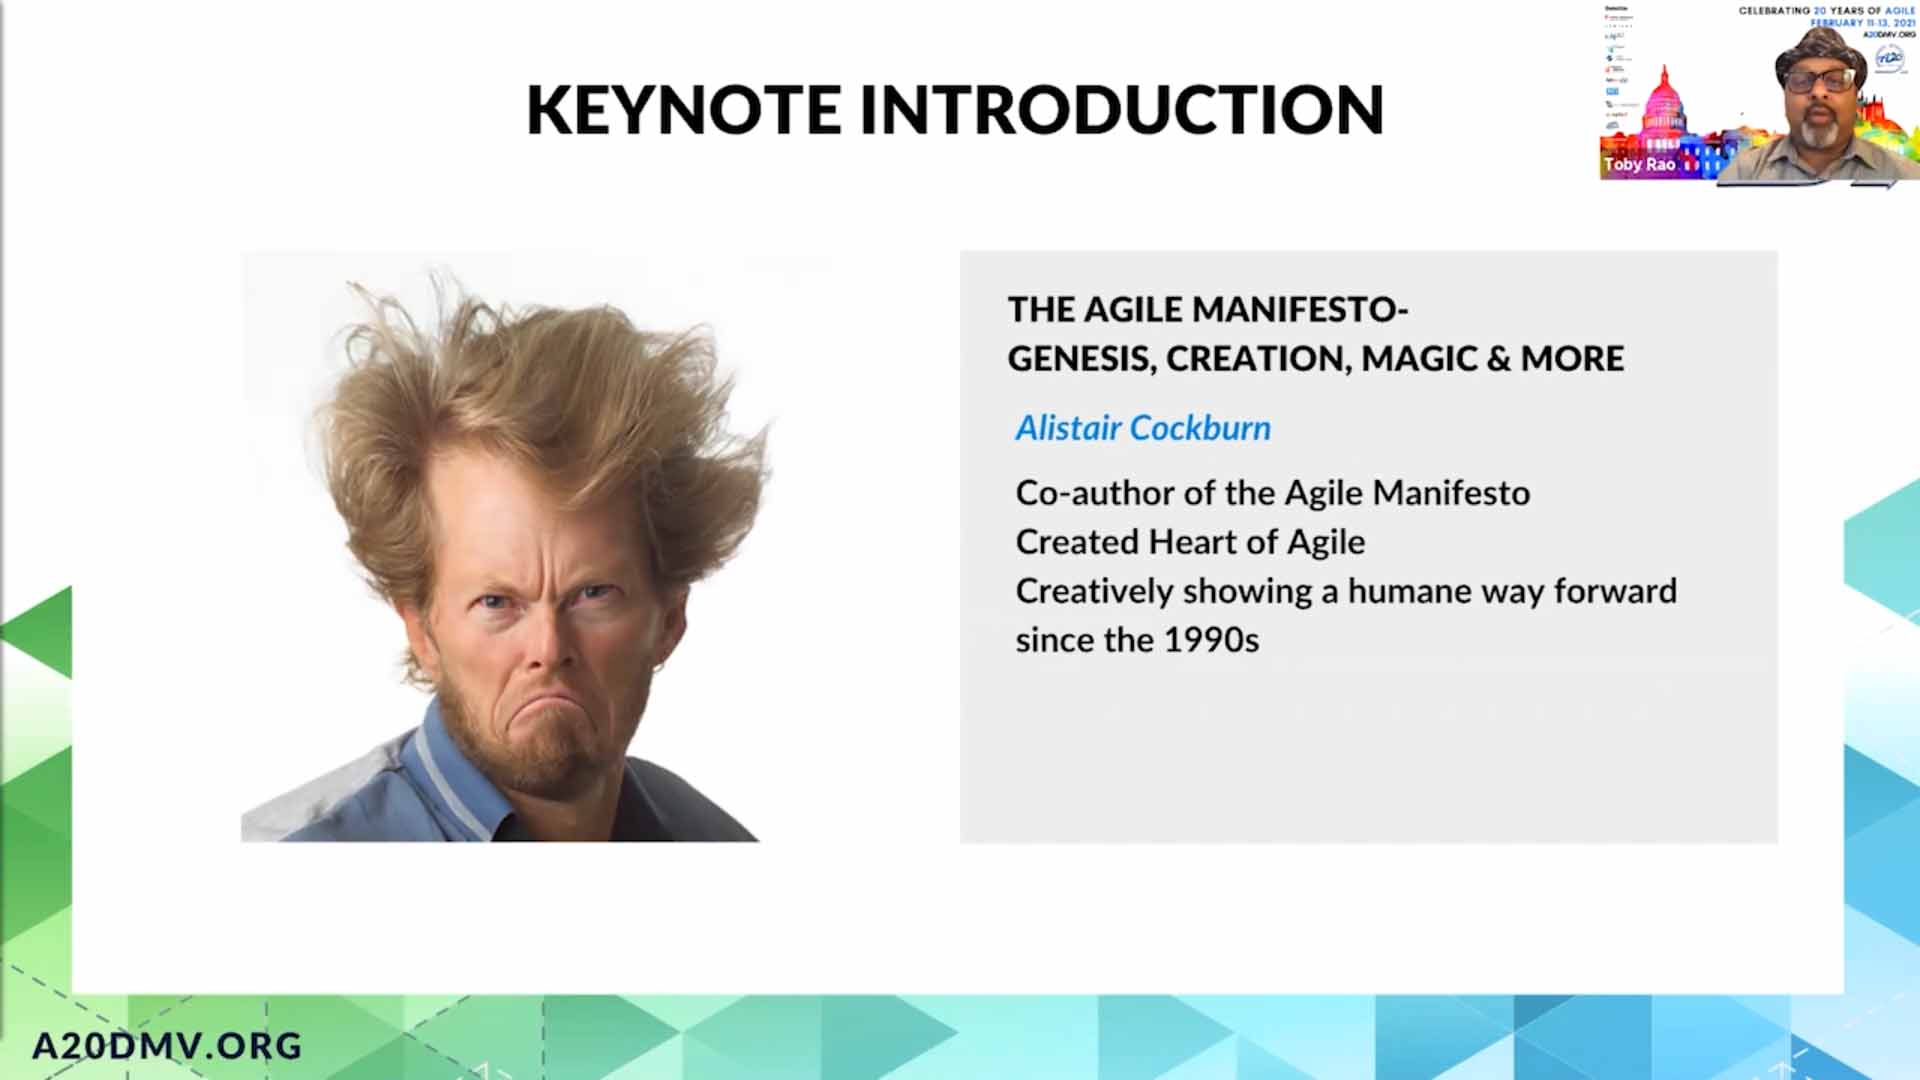 The Agile Manifesto Genesis, Creation, Magic and more with Alistair Cockburn